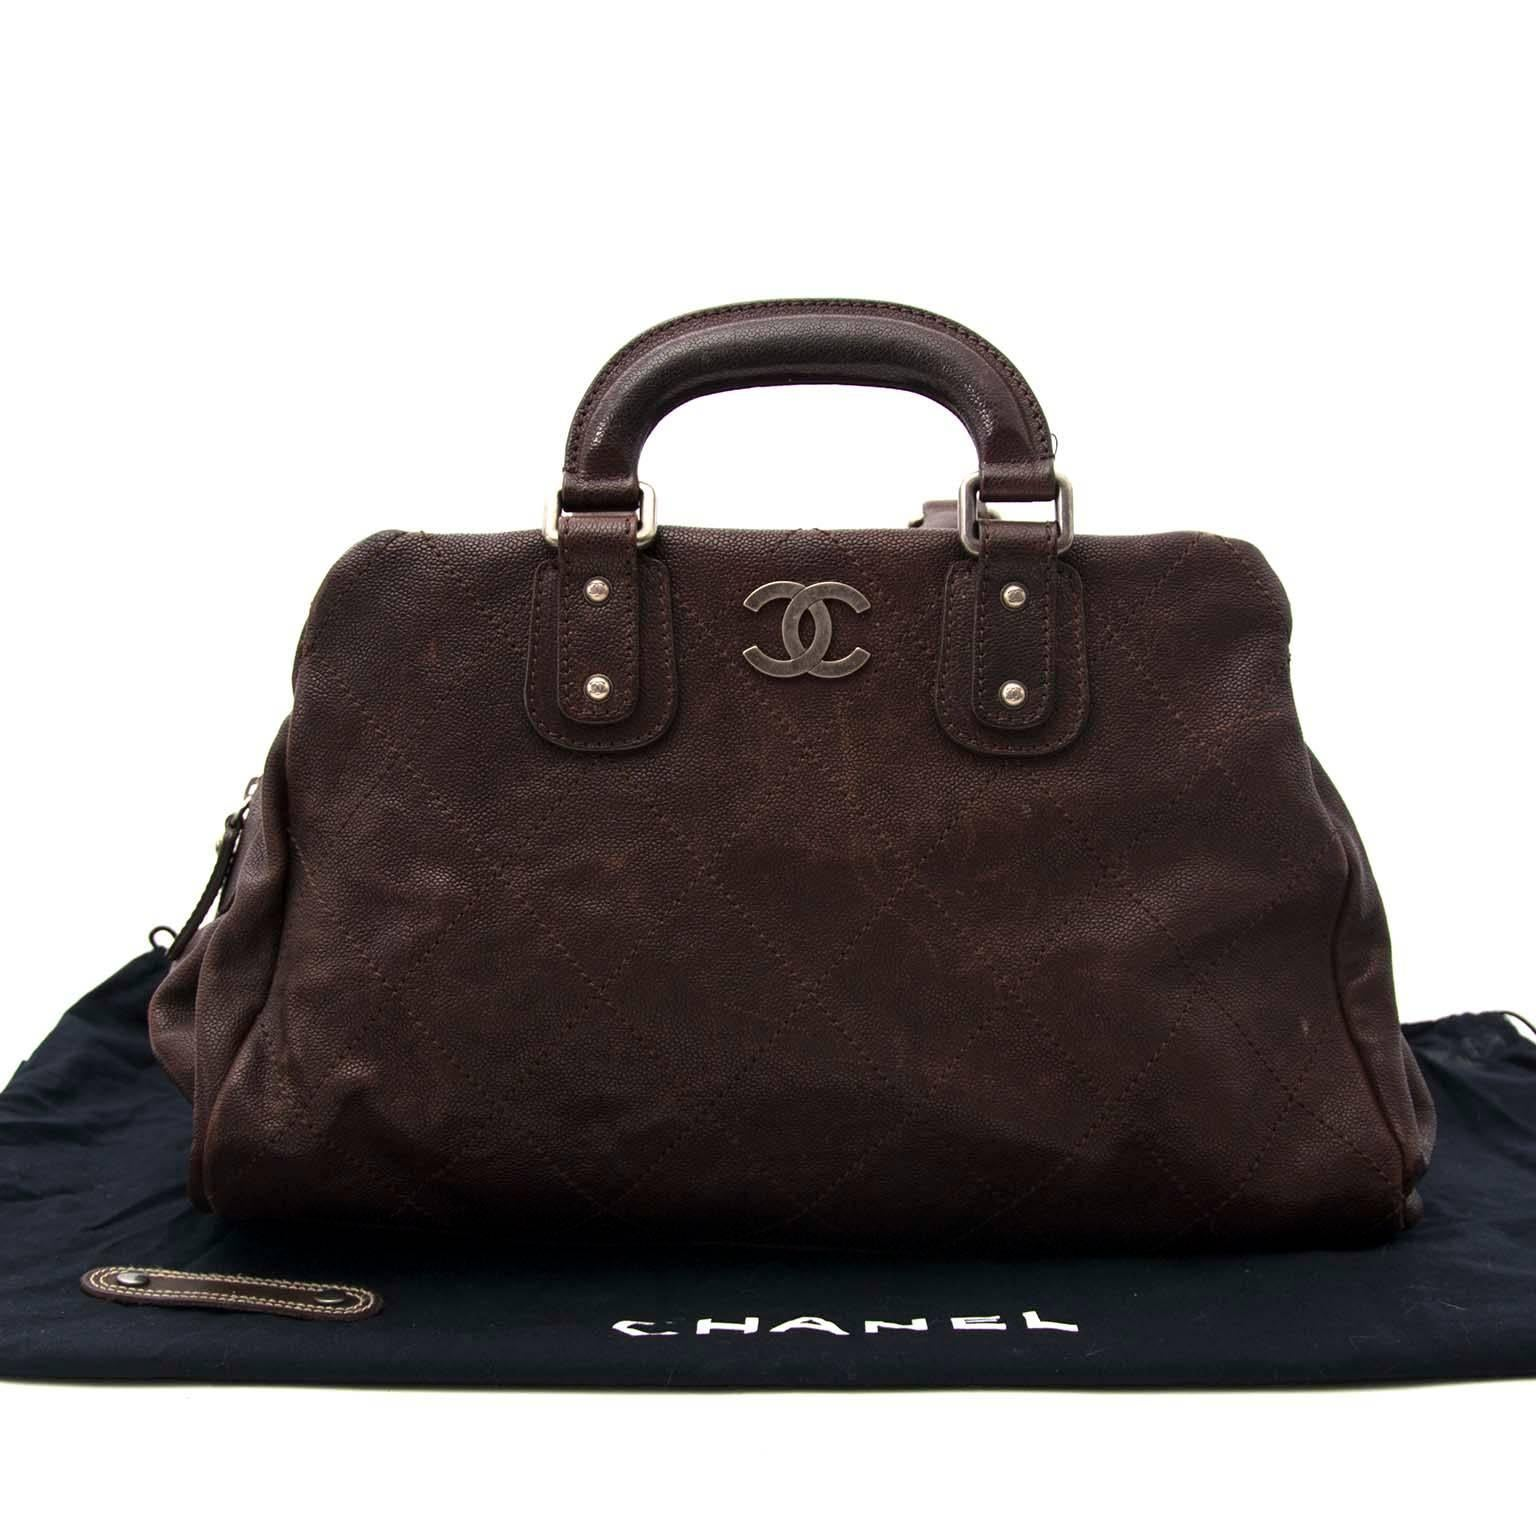 83785525dfb81f Chanel Brown Caviar Leather Outdoor Ligne Doctors Bag at 1stdibs